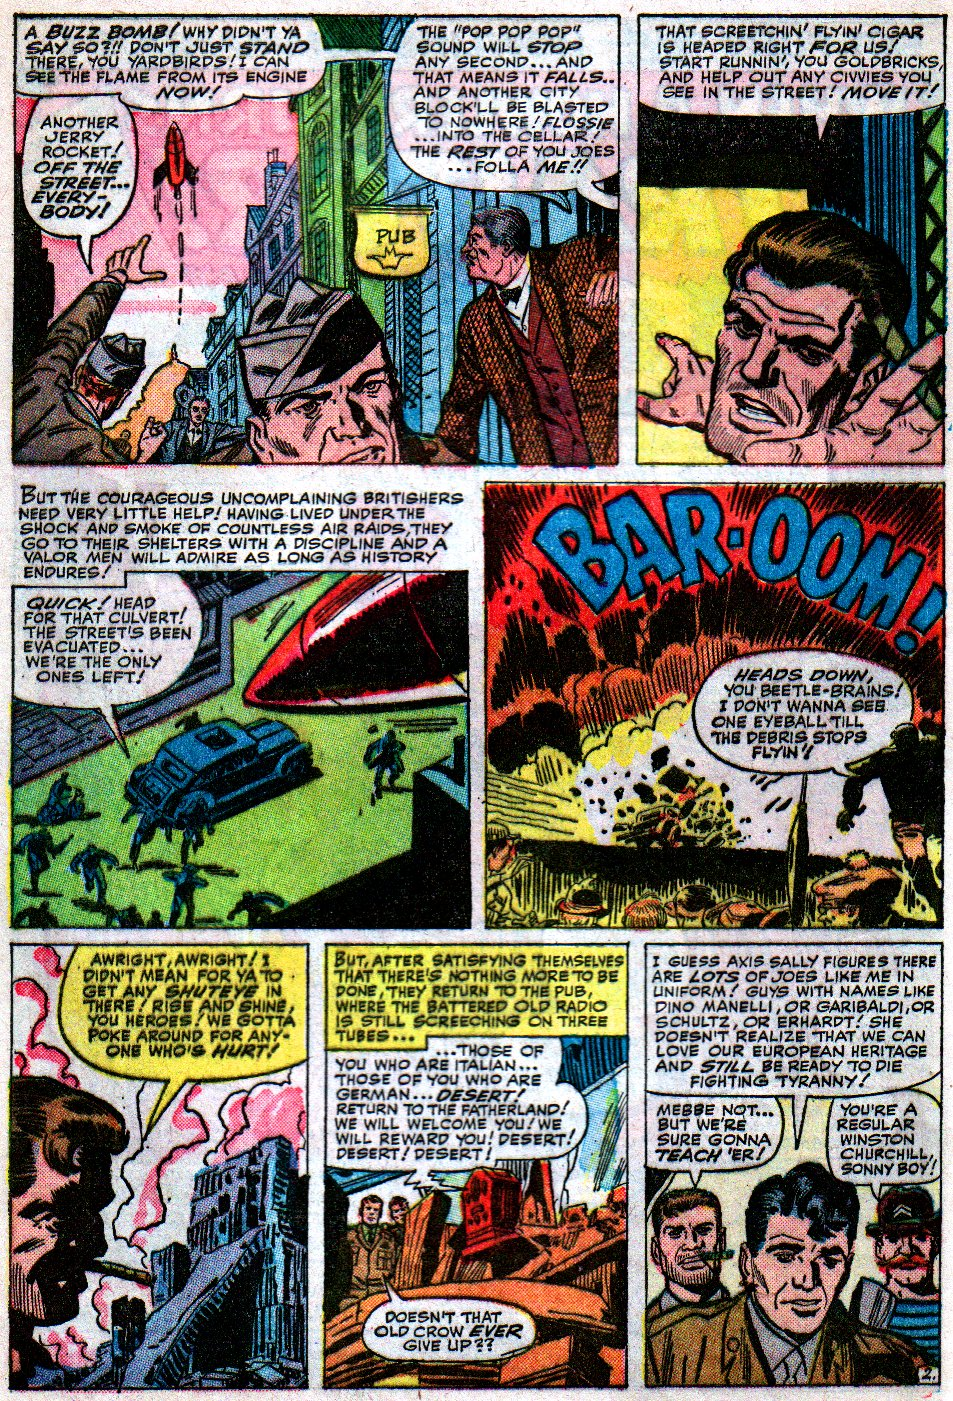 Read online Sgt. Fury comic -  Issue #12 - 4